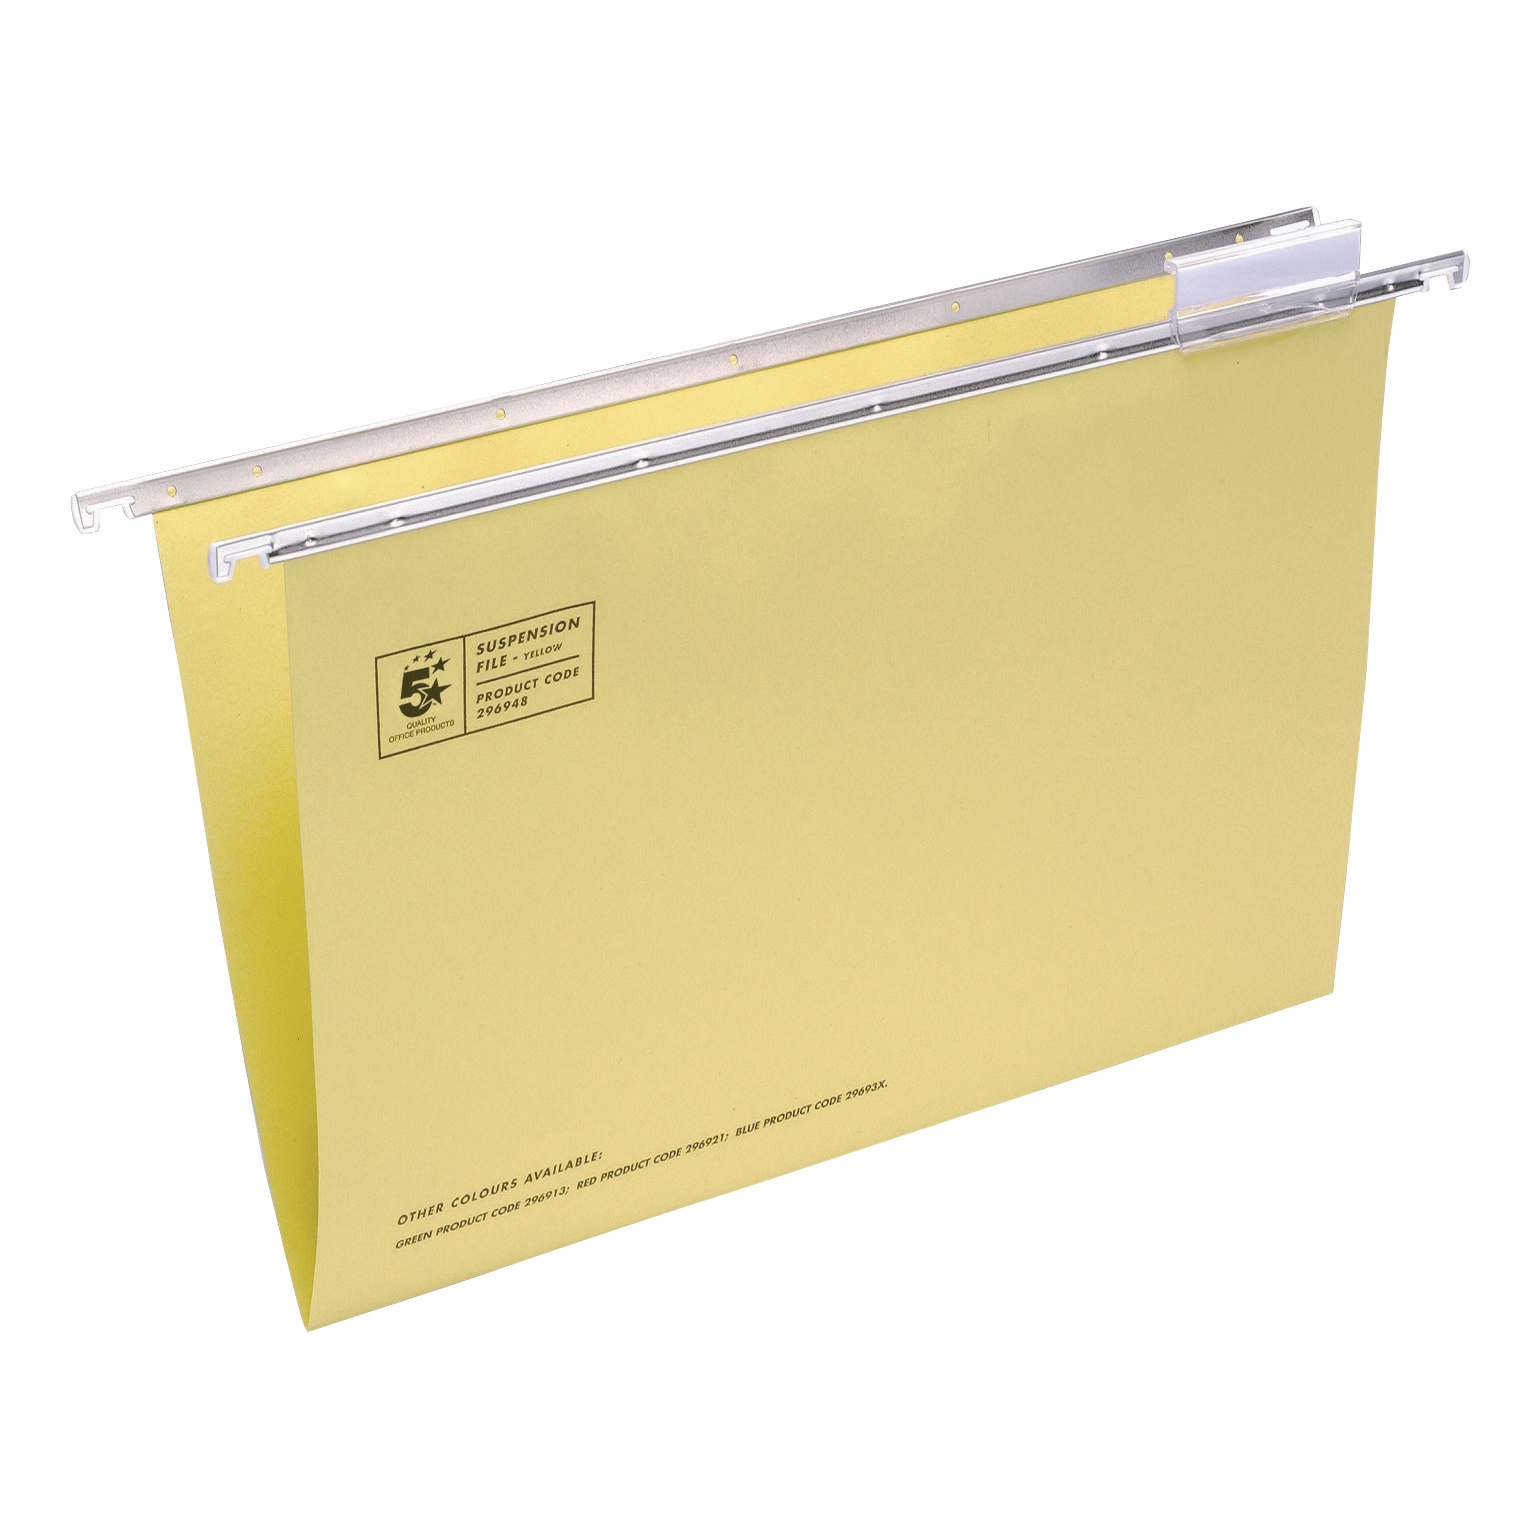 Suspension File 5 Star Office Suspension File with Tabs and Inserts Manilla 15mm V-base 180gsm Foolscap Yellow Pack 50